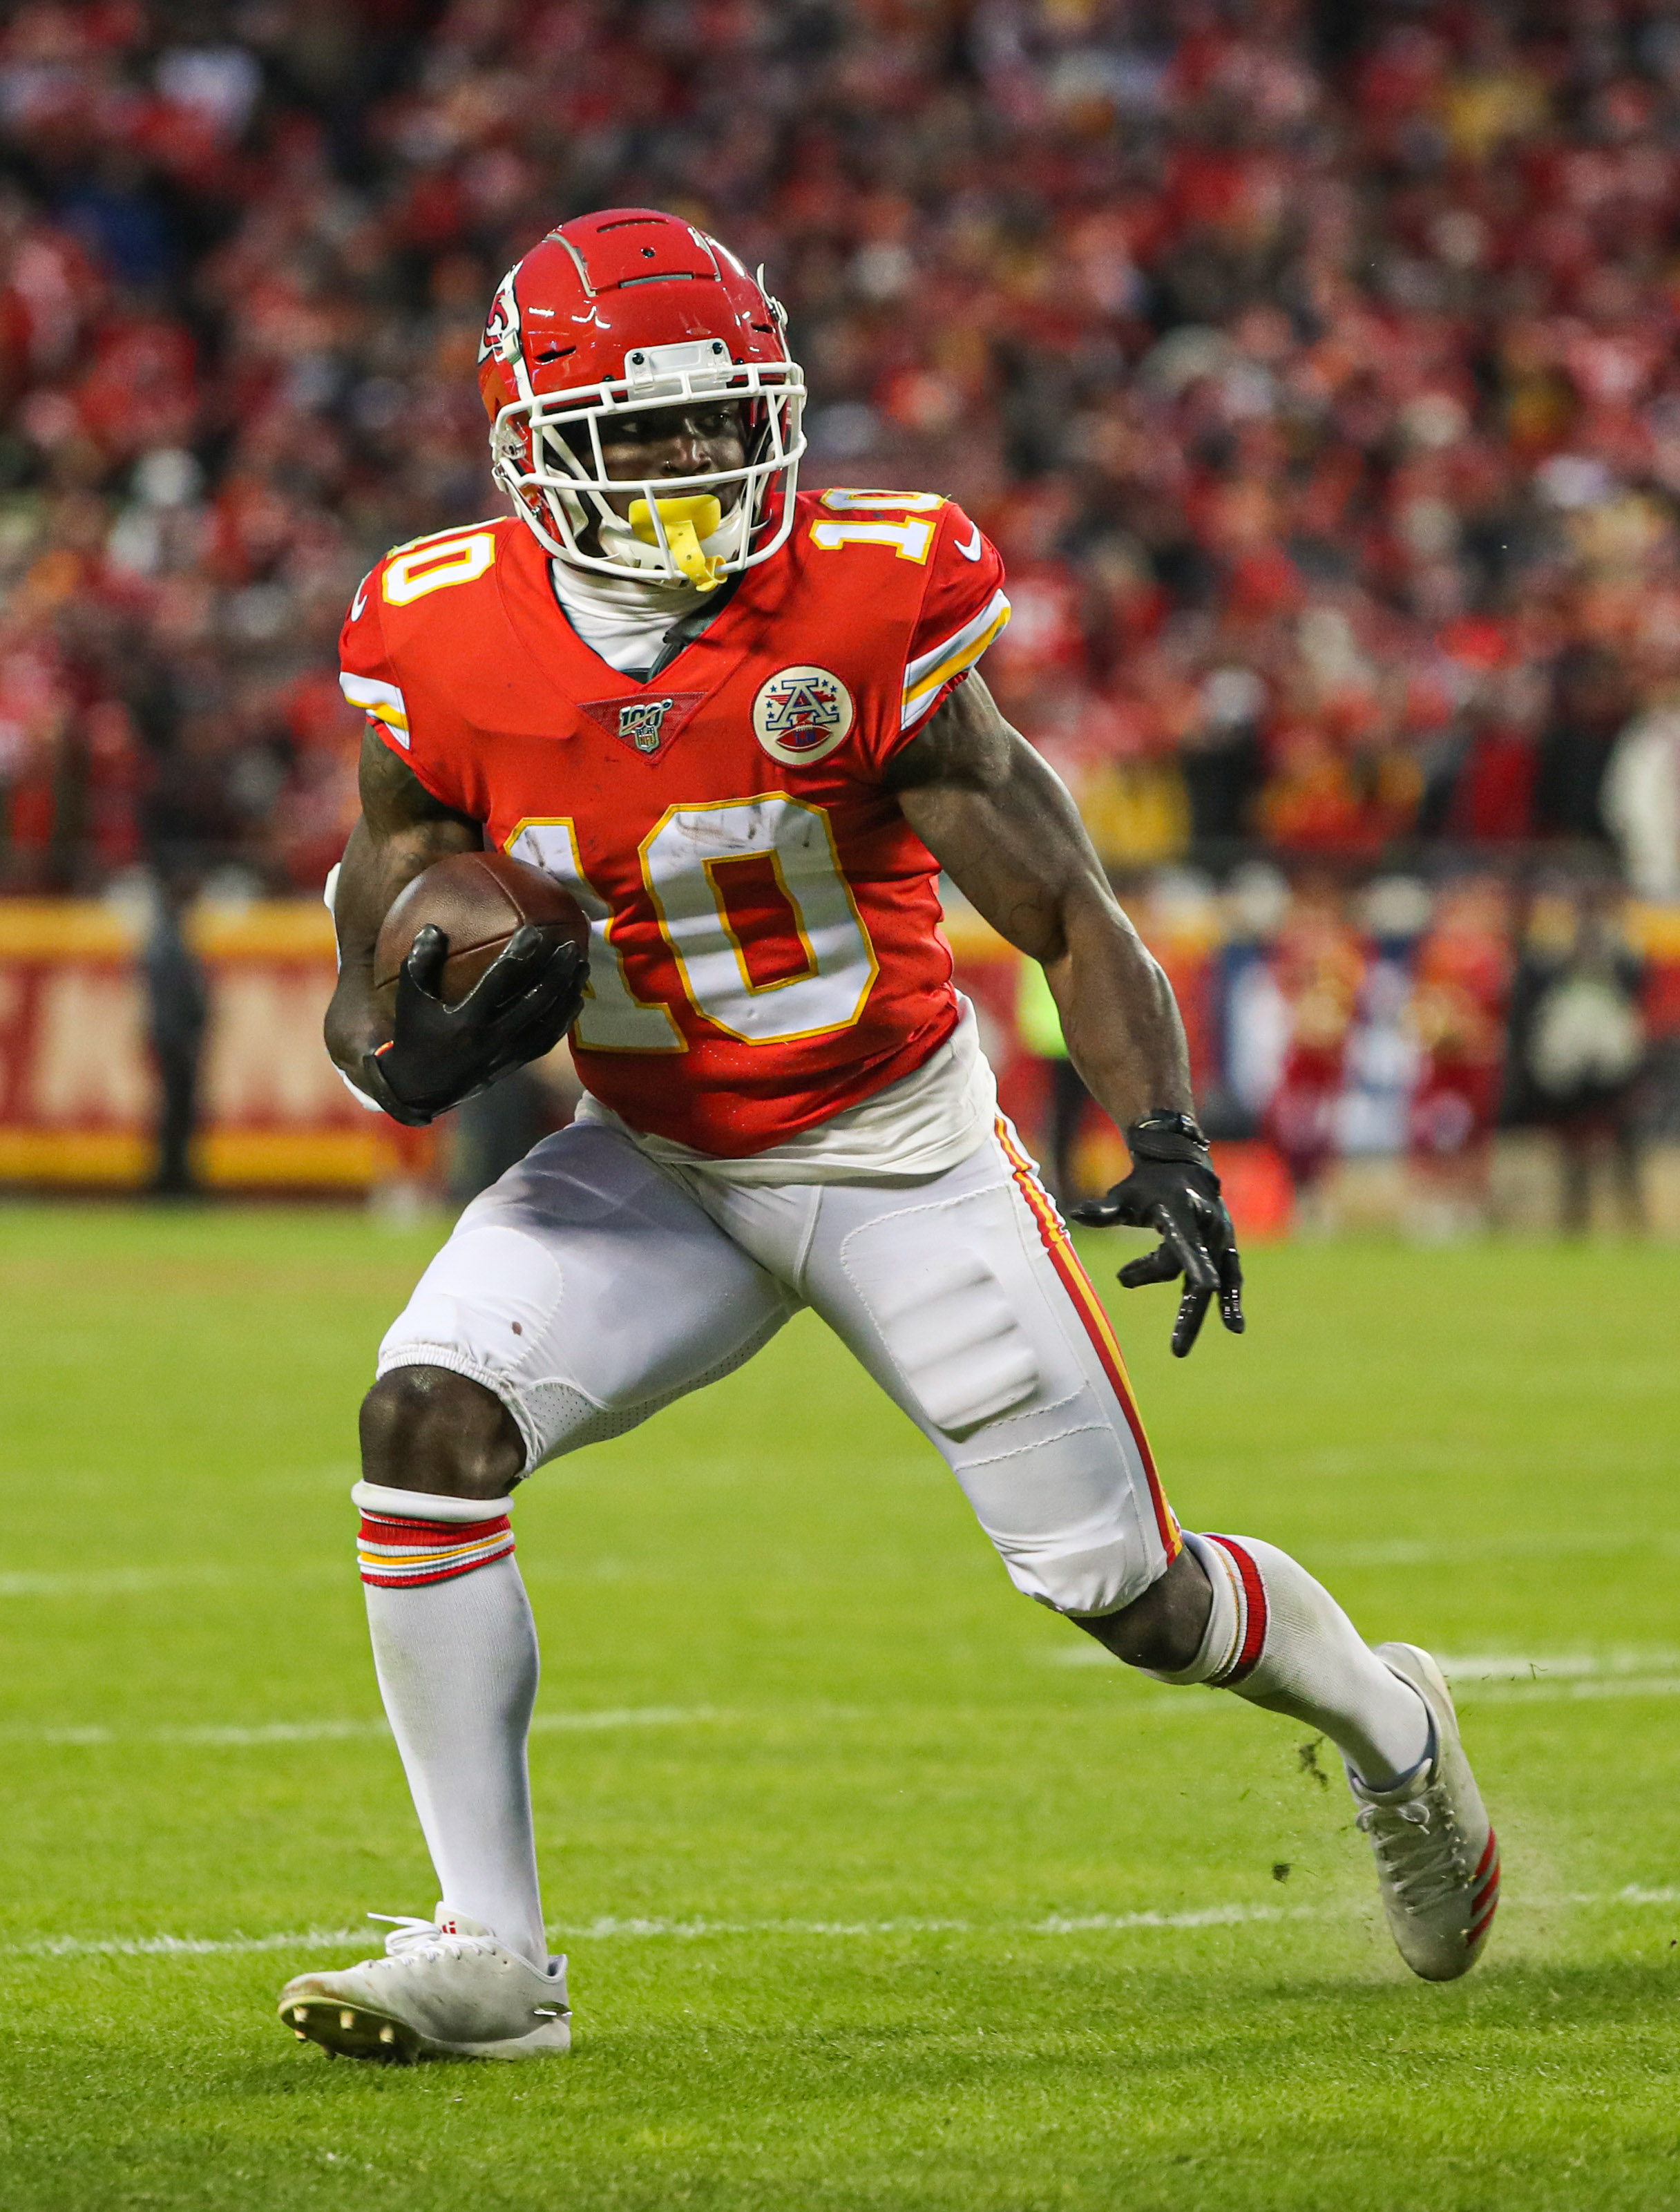 Kansas City Chiefs wide receiver Tyreek Hill runs against the Houston Texans during the second half in a AFC Divisional Round playoff football game at Arrowhead Stadium.